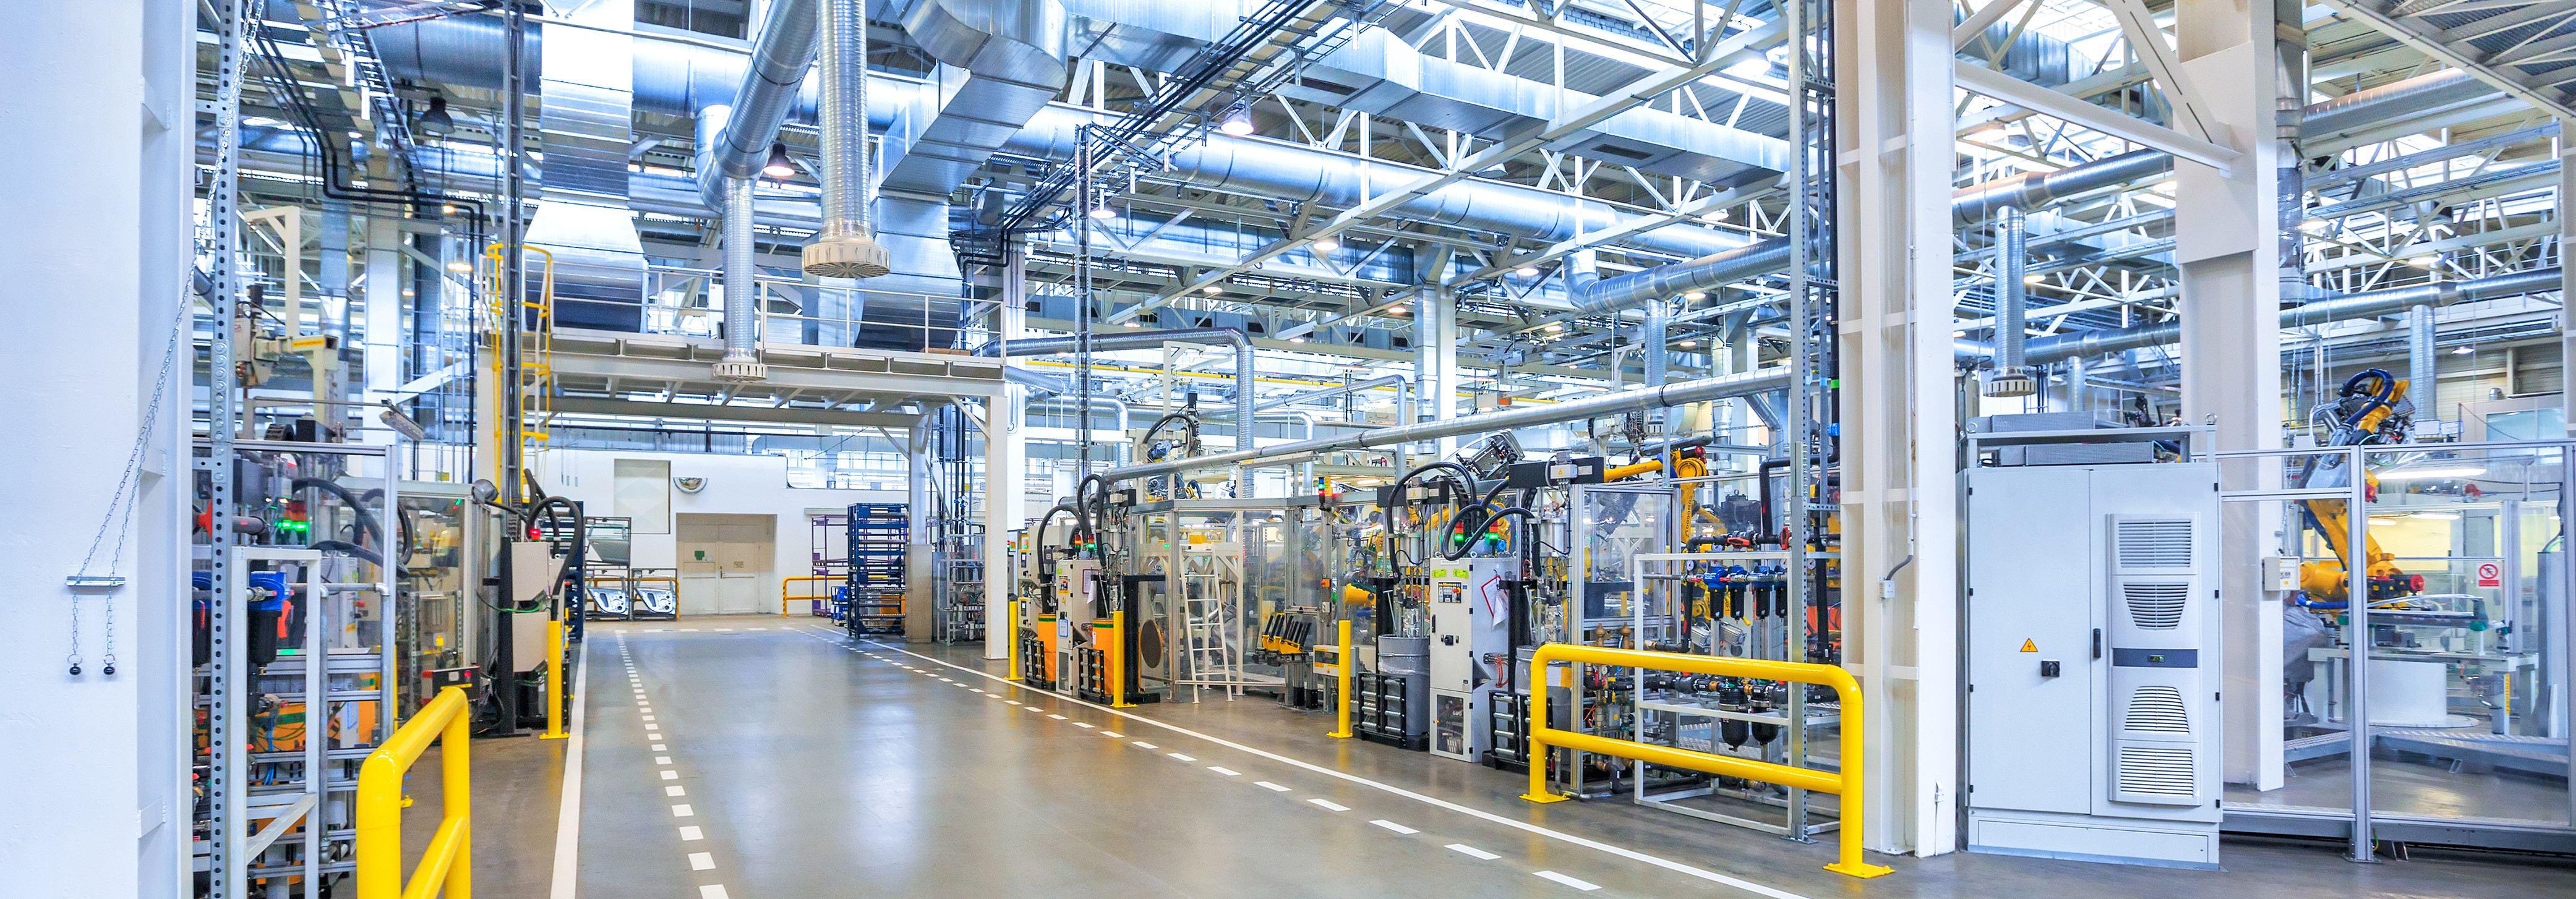 Execute your most advanced manufacturing processes with SAP Business One Cloud ERP Software on the Stellar One Cloud Platform